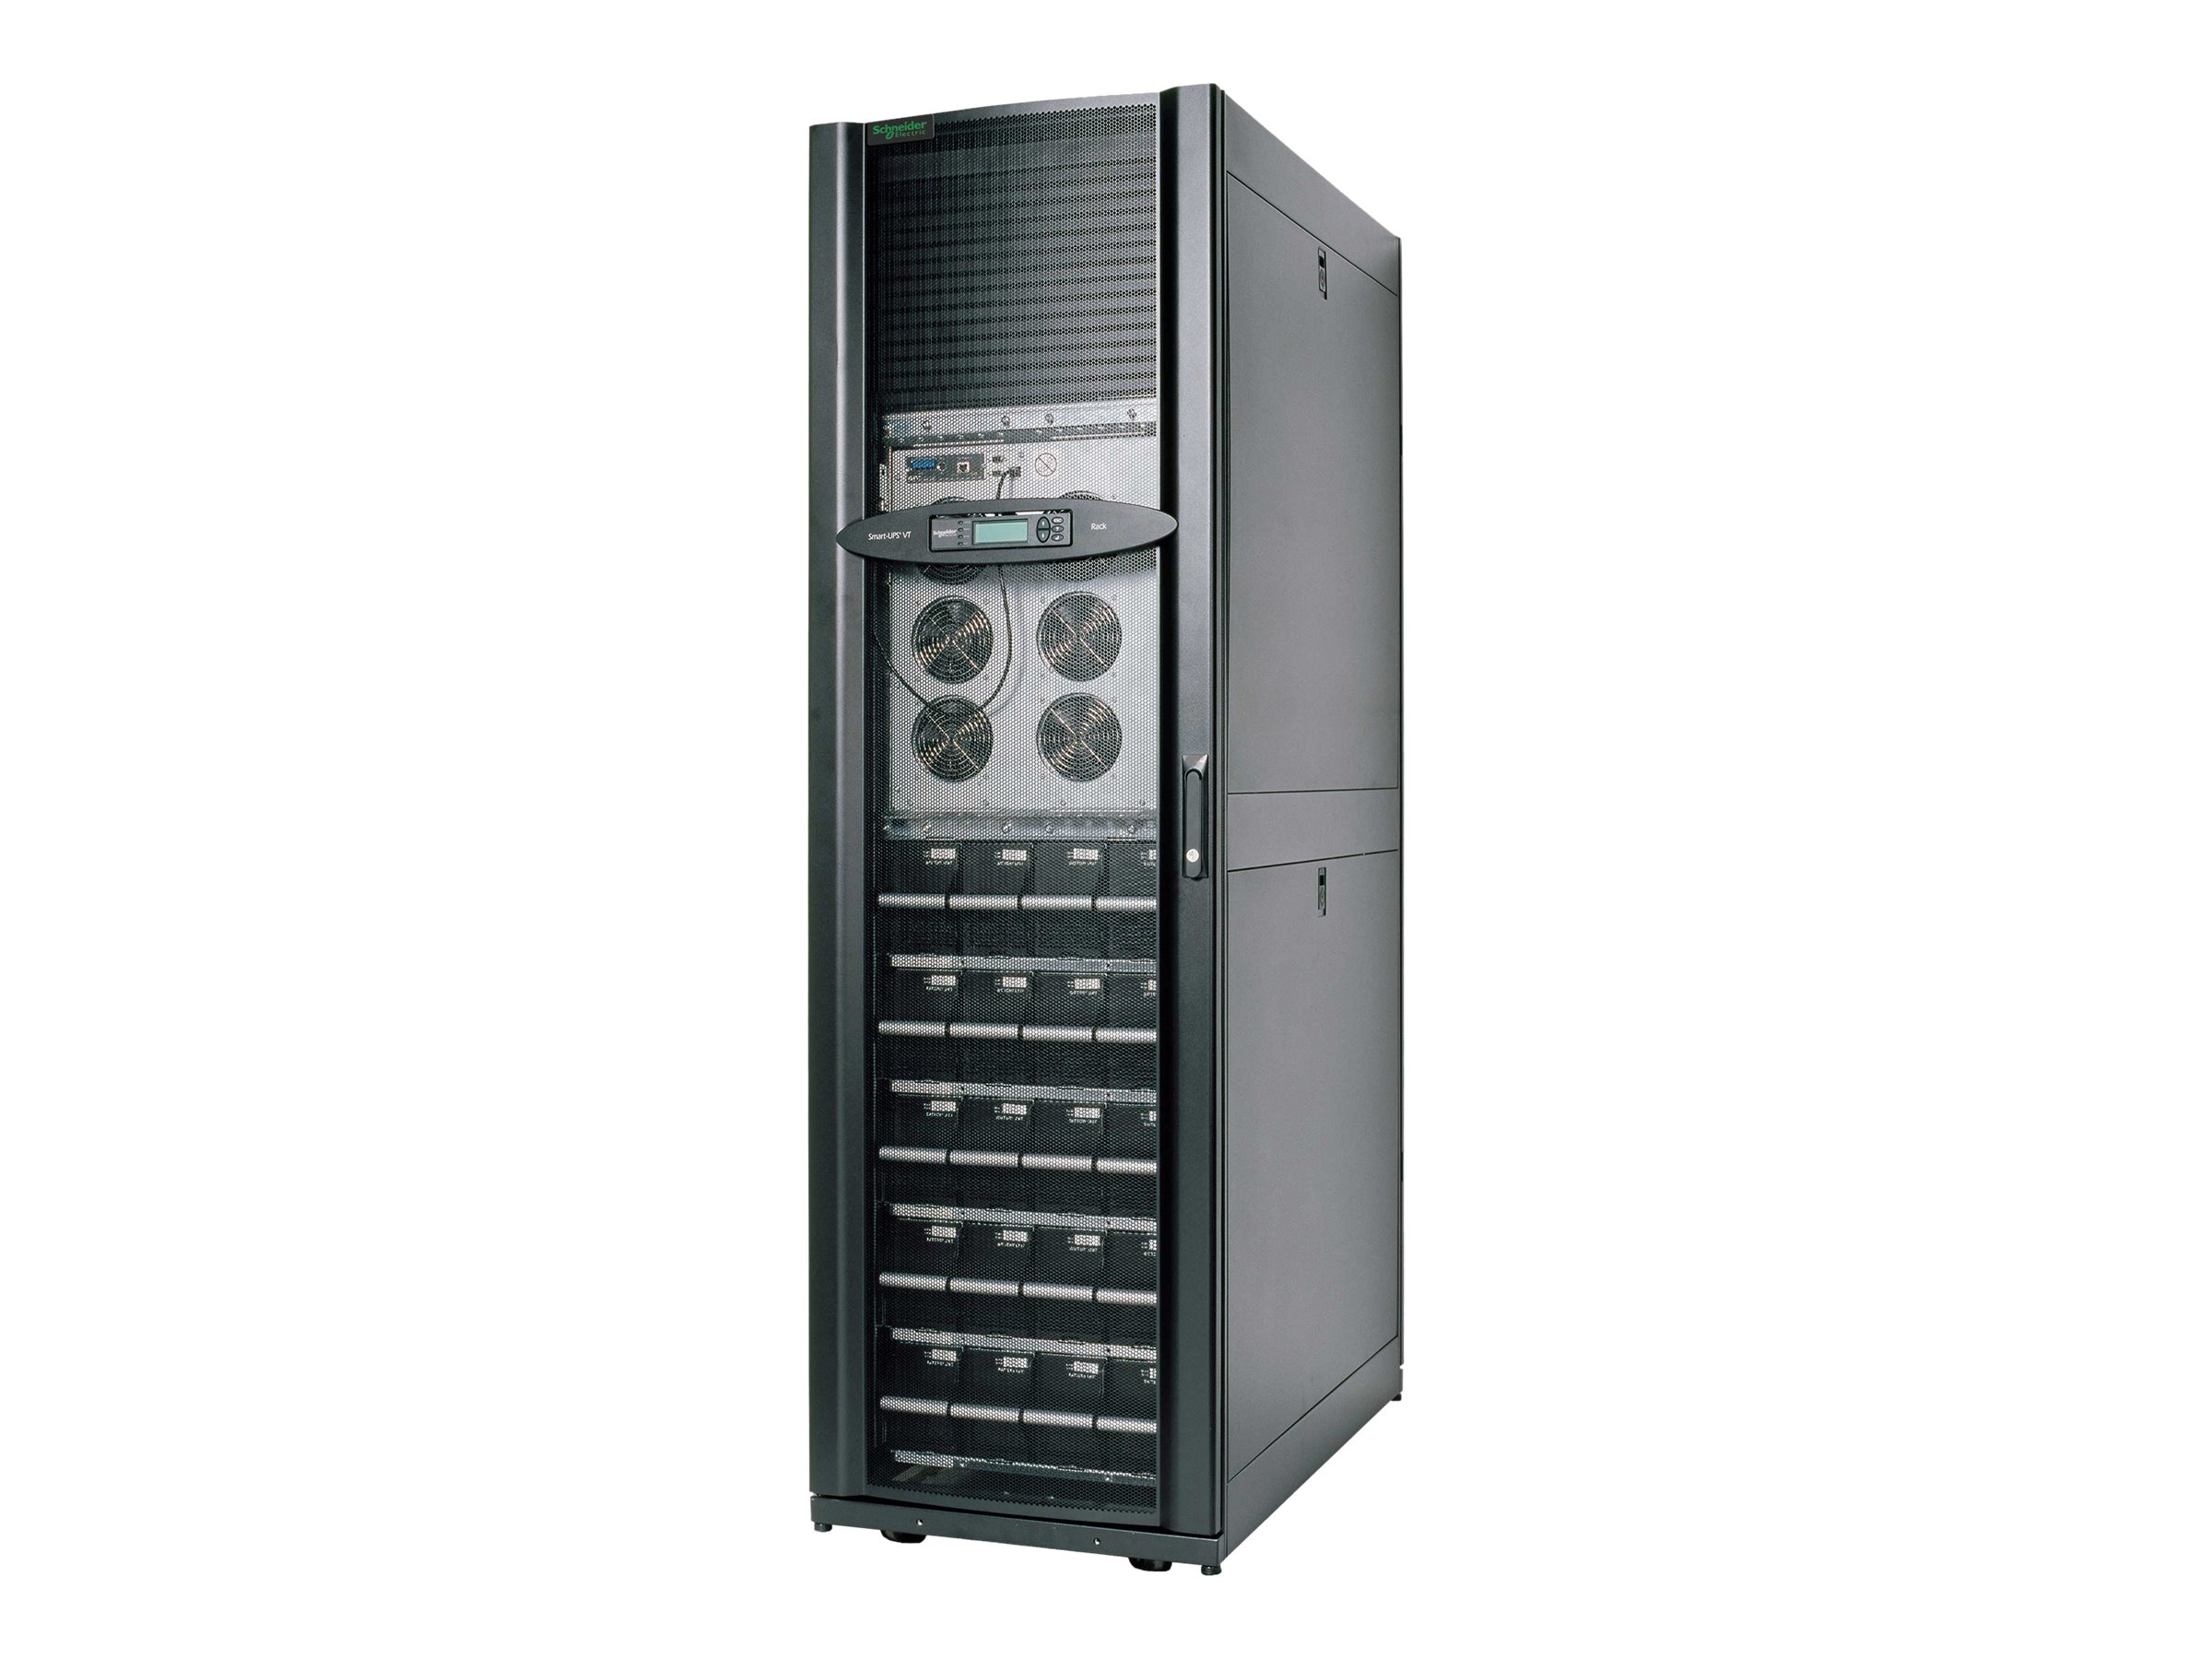 APC Smart-UPS VT 20kVA 208V Rack Mounted, (4) Battery Modules Expandable to (5), PDU, Startup Service